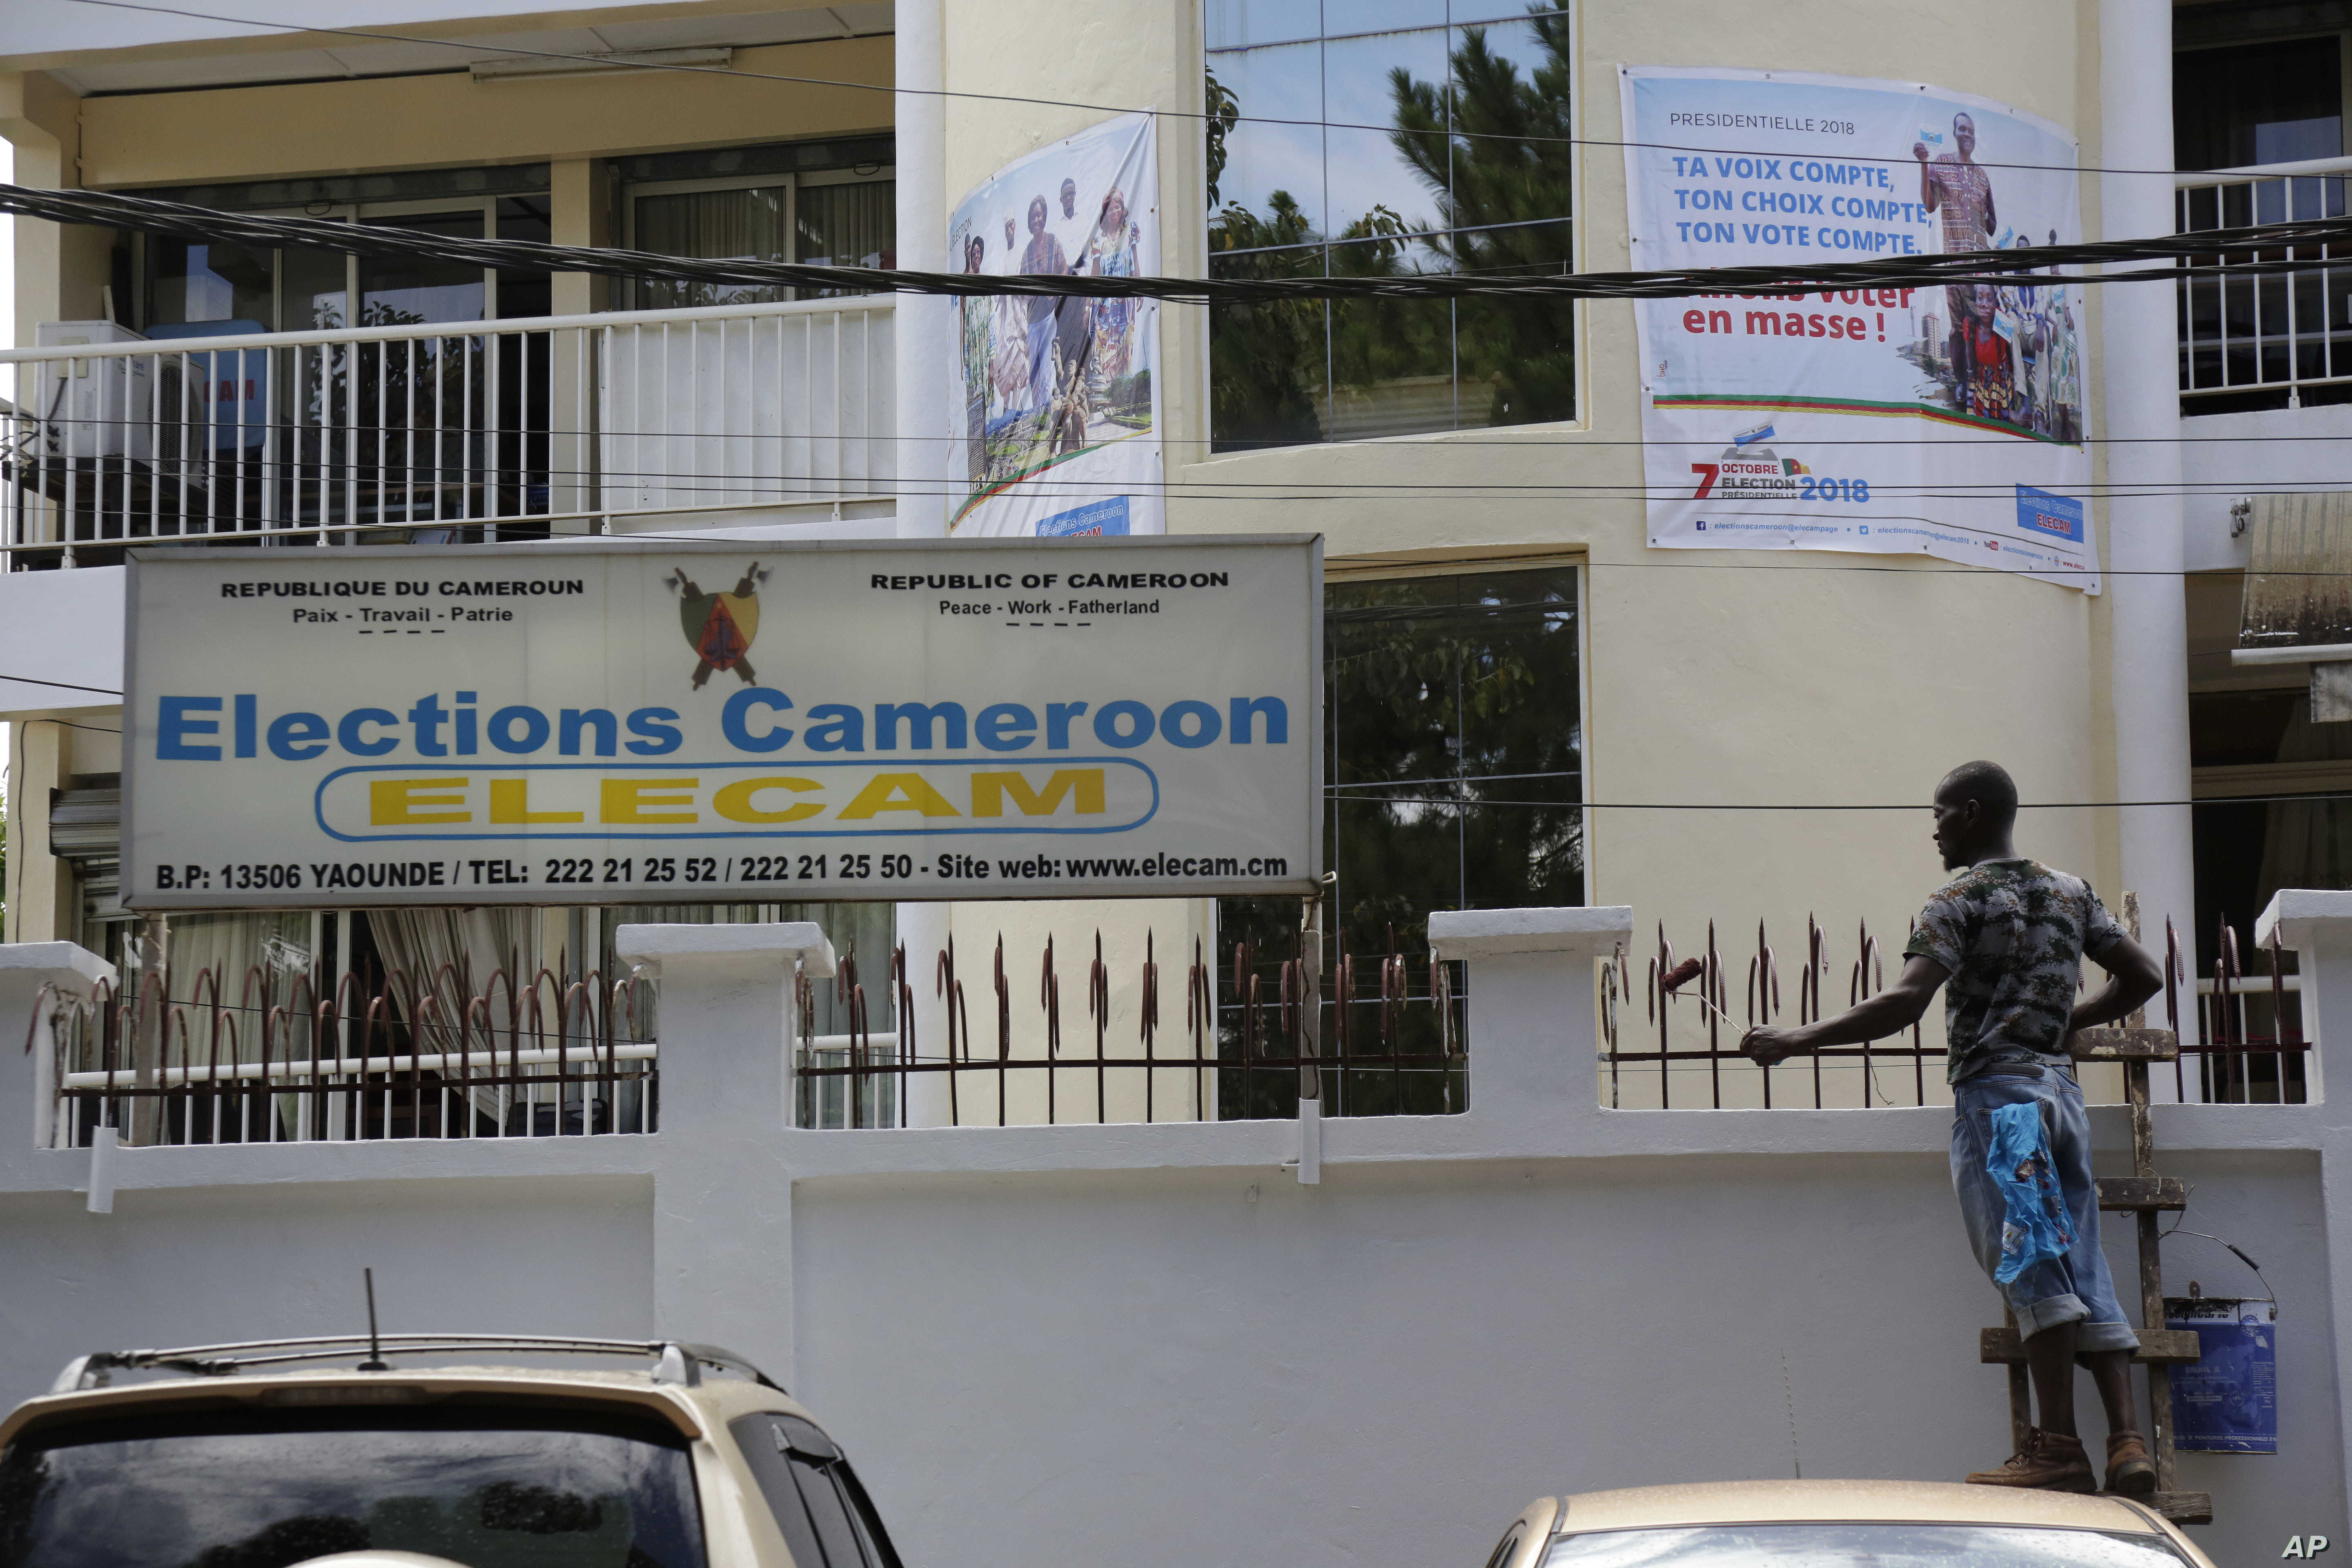 Cameroon's Election Body Reviewing Petitions to Cancel